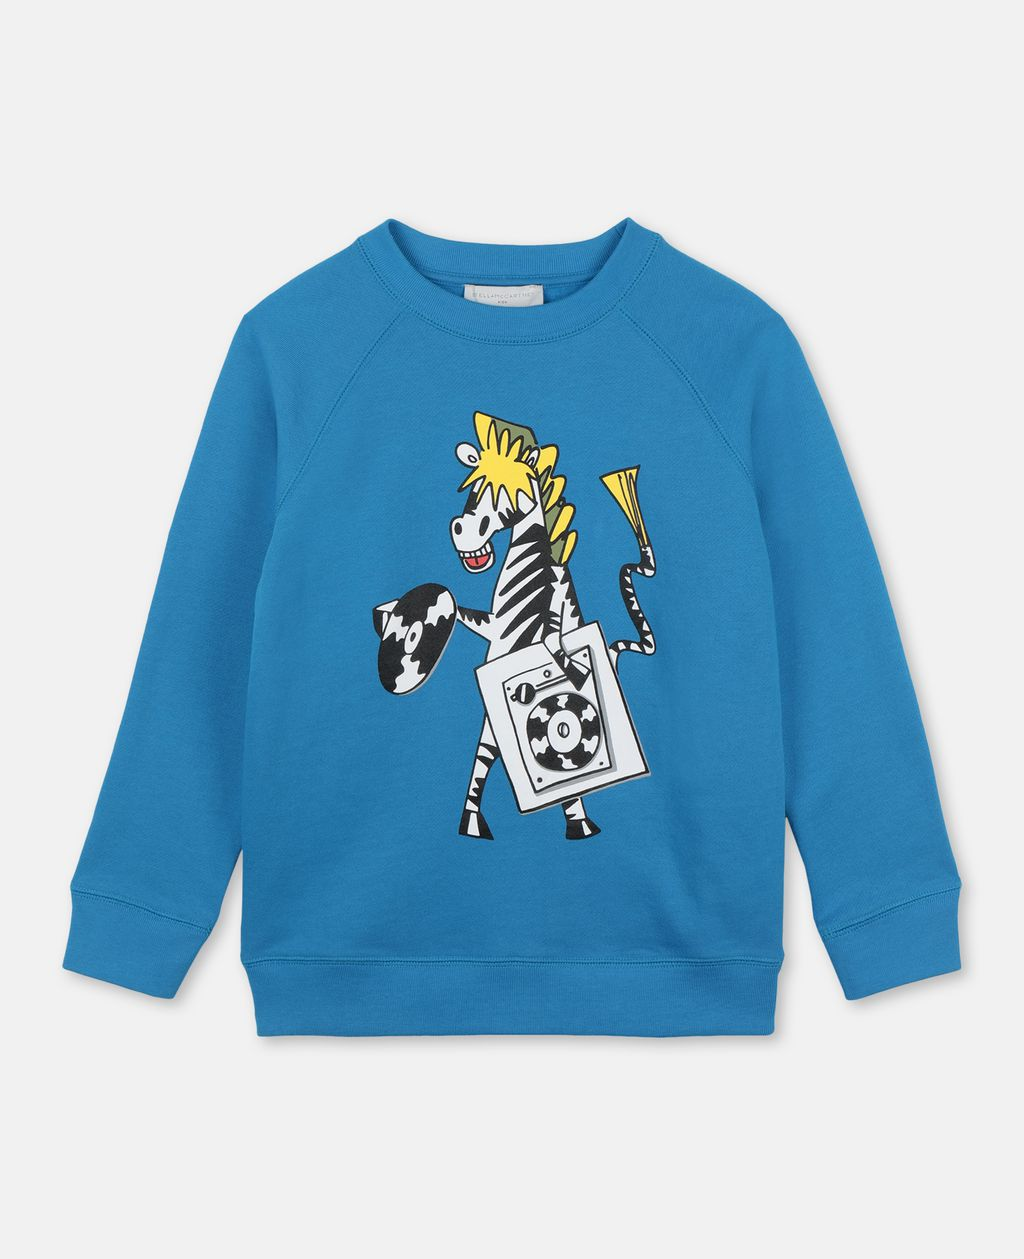 Stella Mccartney STELLA MCCARTNEY KIDS BLUE ZEBRA DJ COTTON SWEATSHIRT